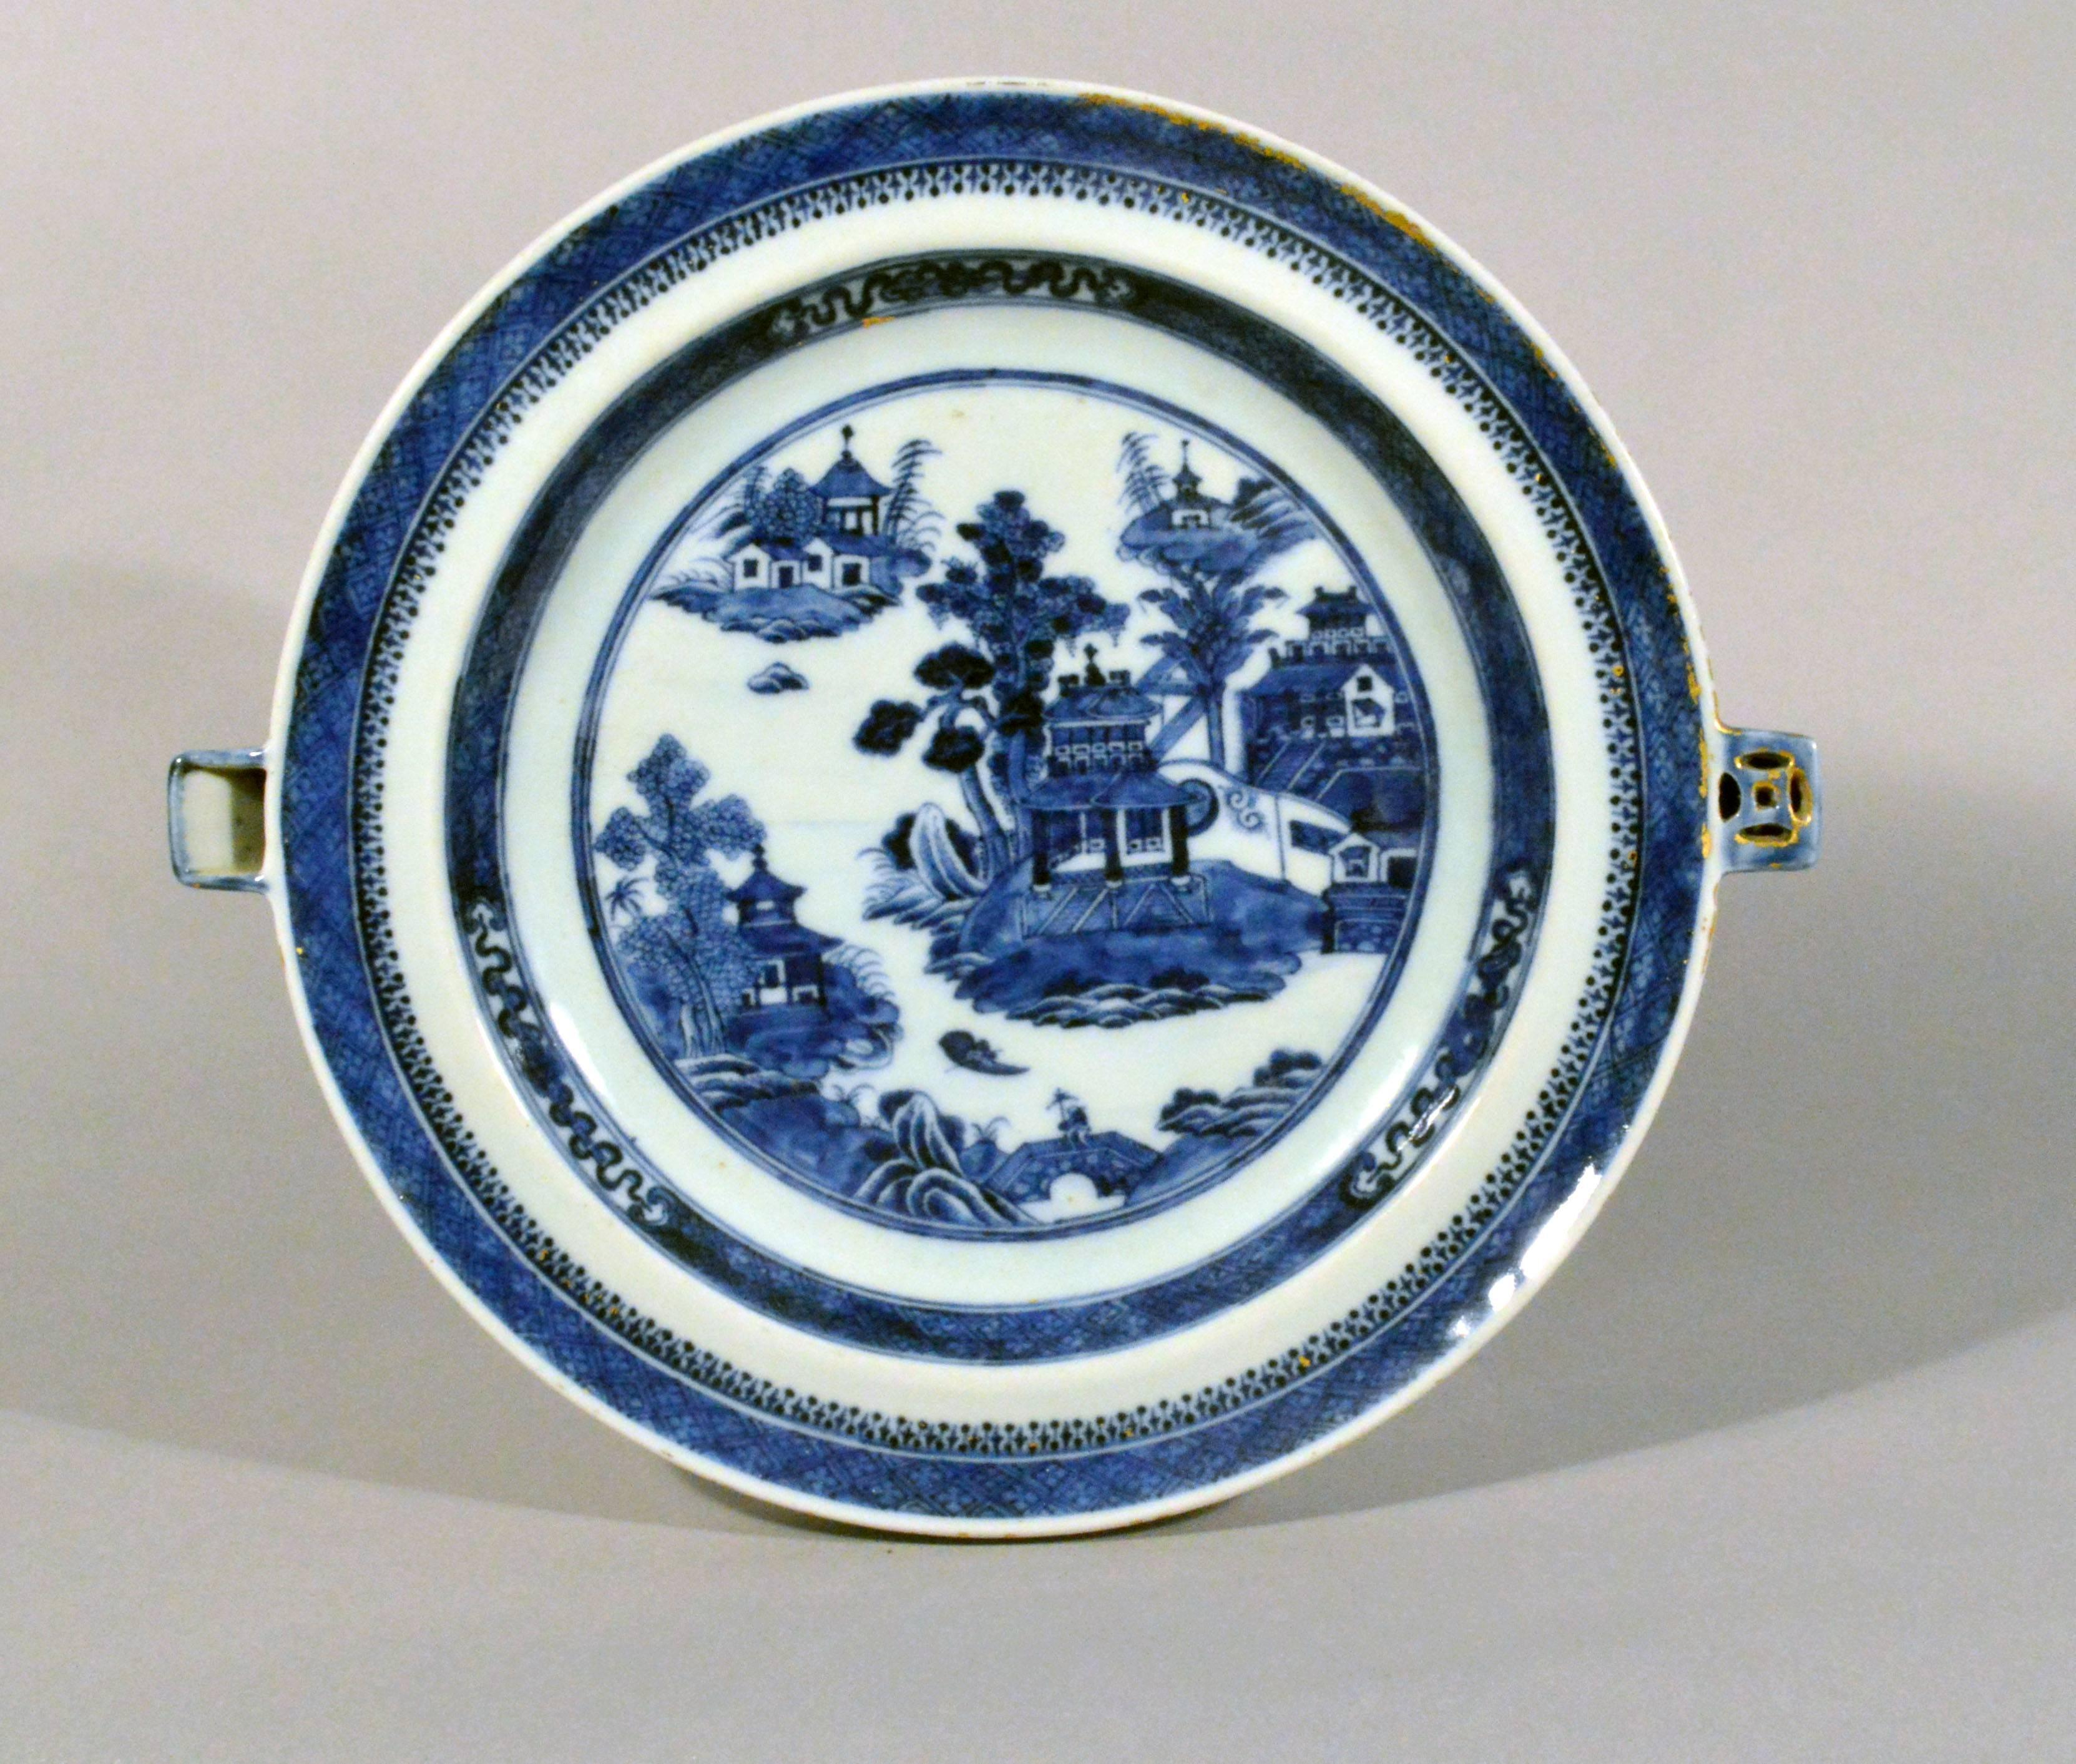 Chinese Export Blue and White Porcelain Hot Water Plates circa 1780-1800 at 1stdibs & Chinese Export Blue and White Porcelain Hot Water Plates circa 1780 ...